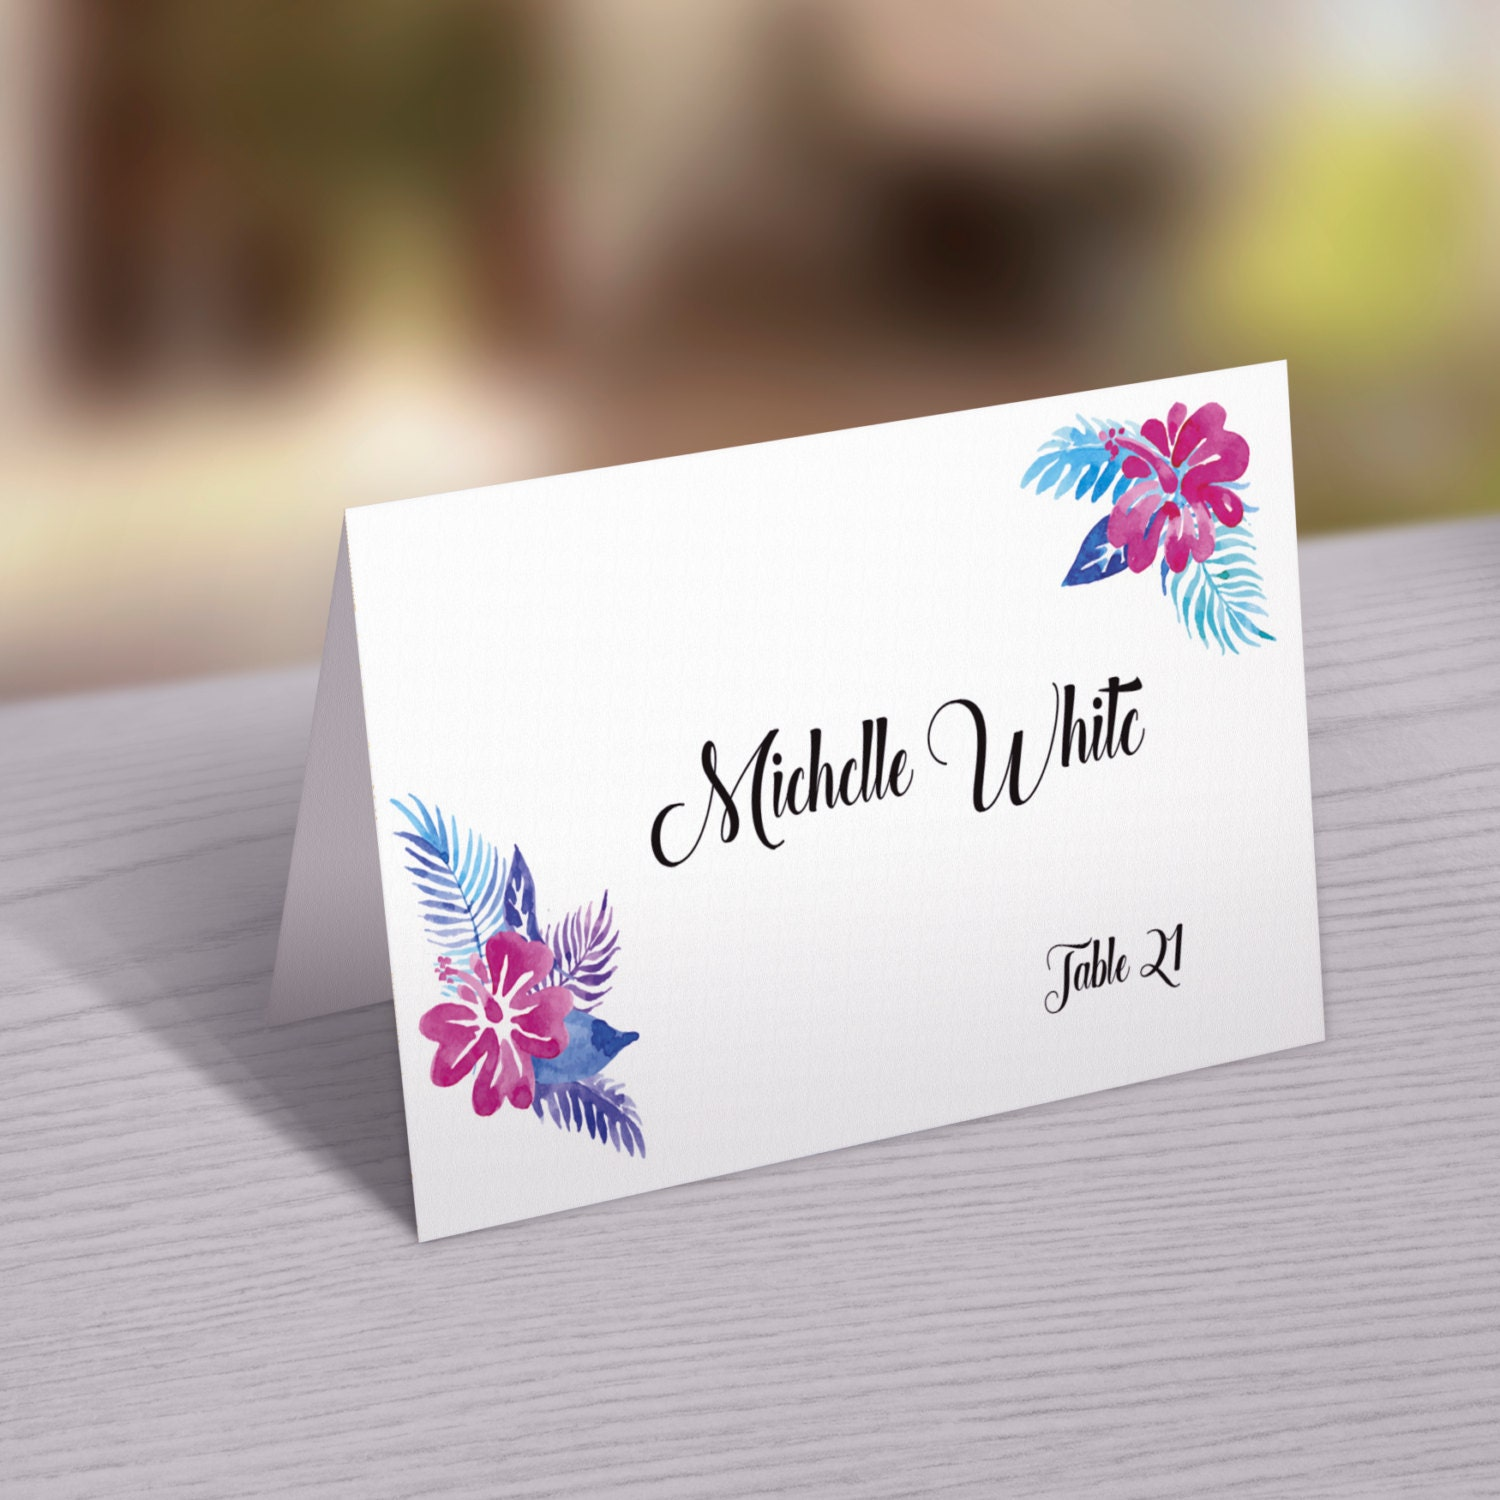 templates for place cards for weddings - wedding place card template printable wedding place cards